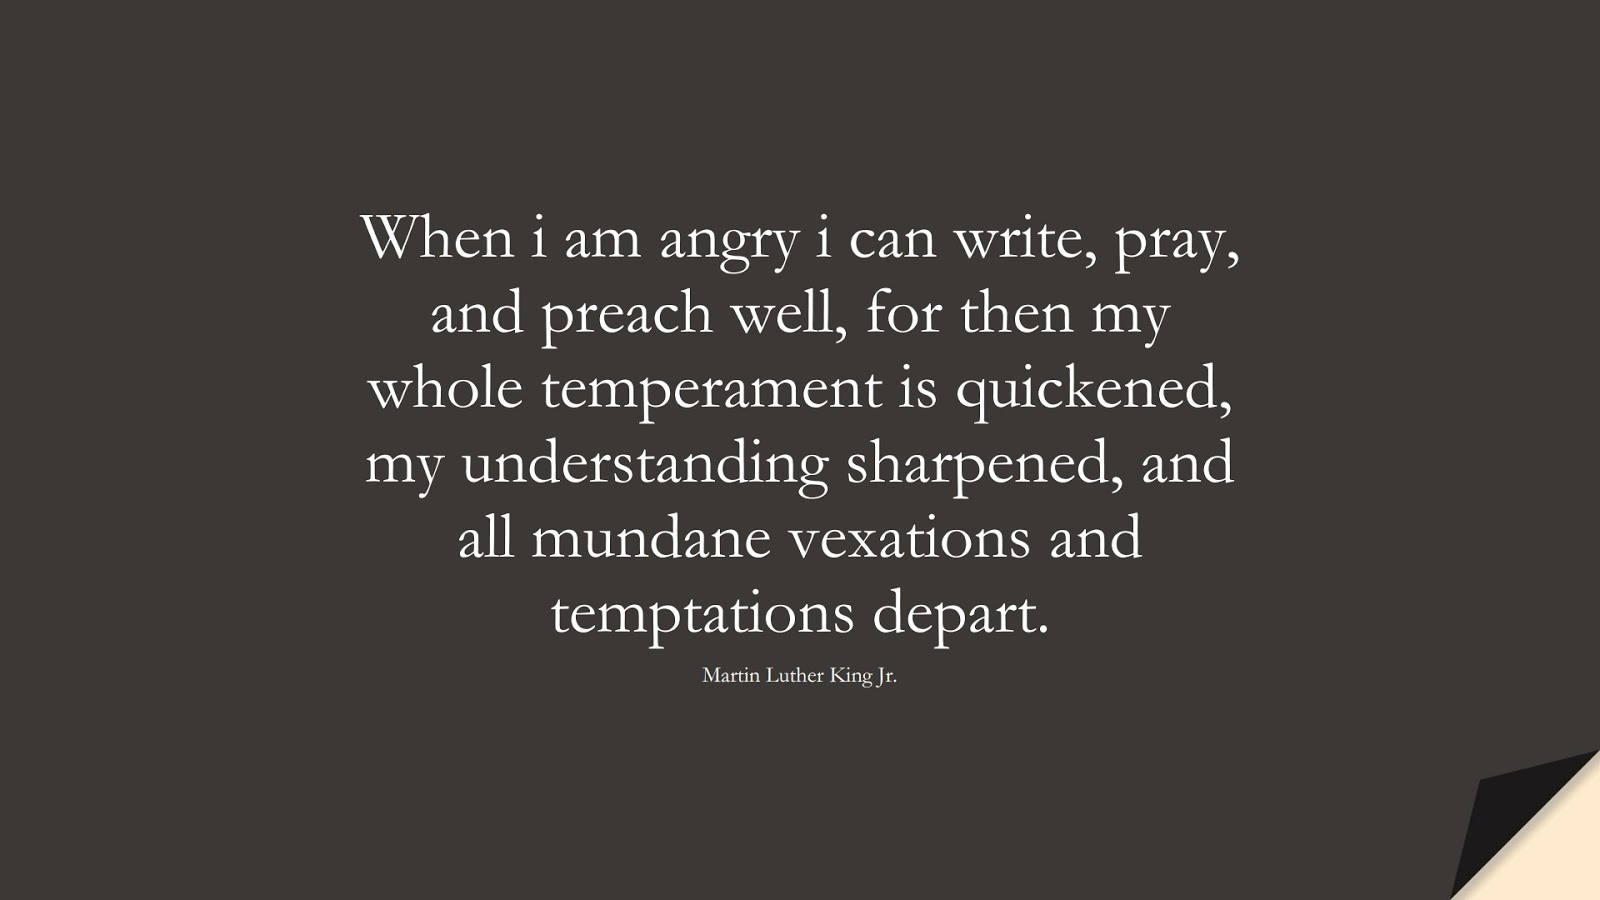 When i am angry i can write, pray, and preach well, for then my whole temperament is quickened, my understanding sharpened, and all mundane vexations and temptations depart. (Martin Luther King Jr.);  #MartinLutherKingJrQuotes